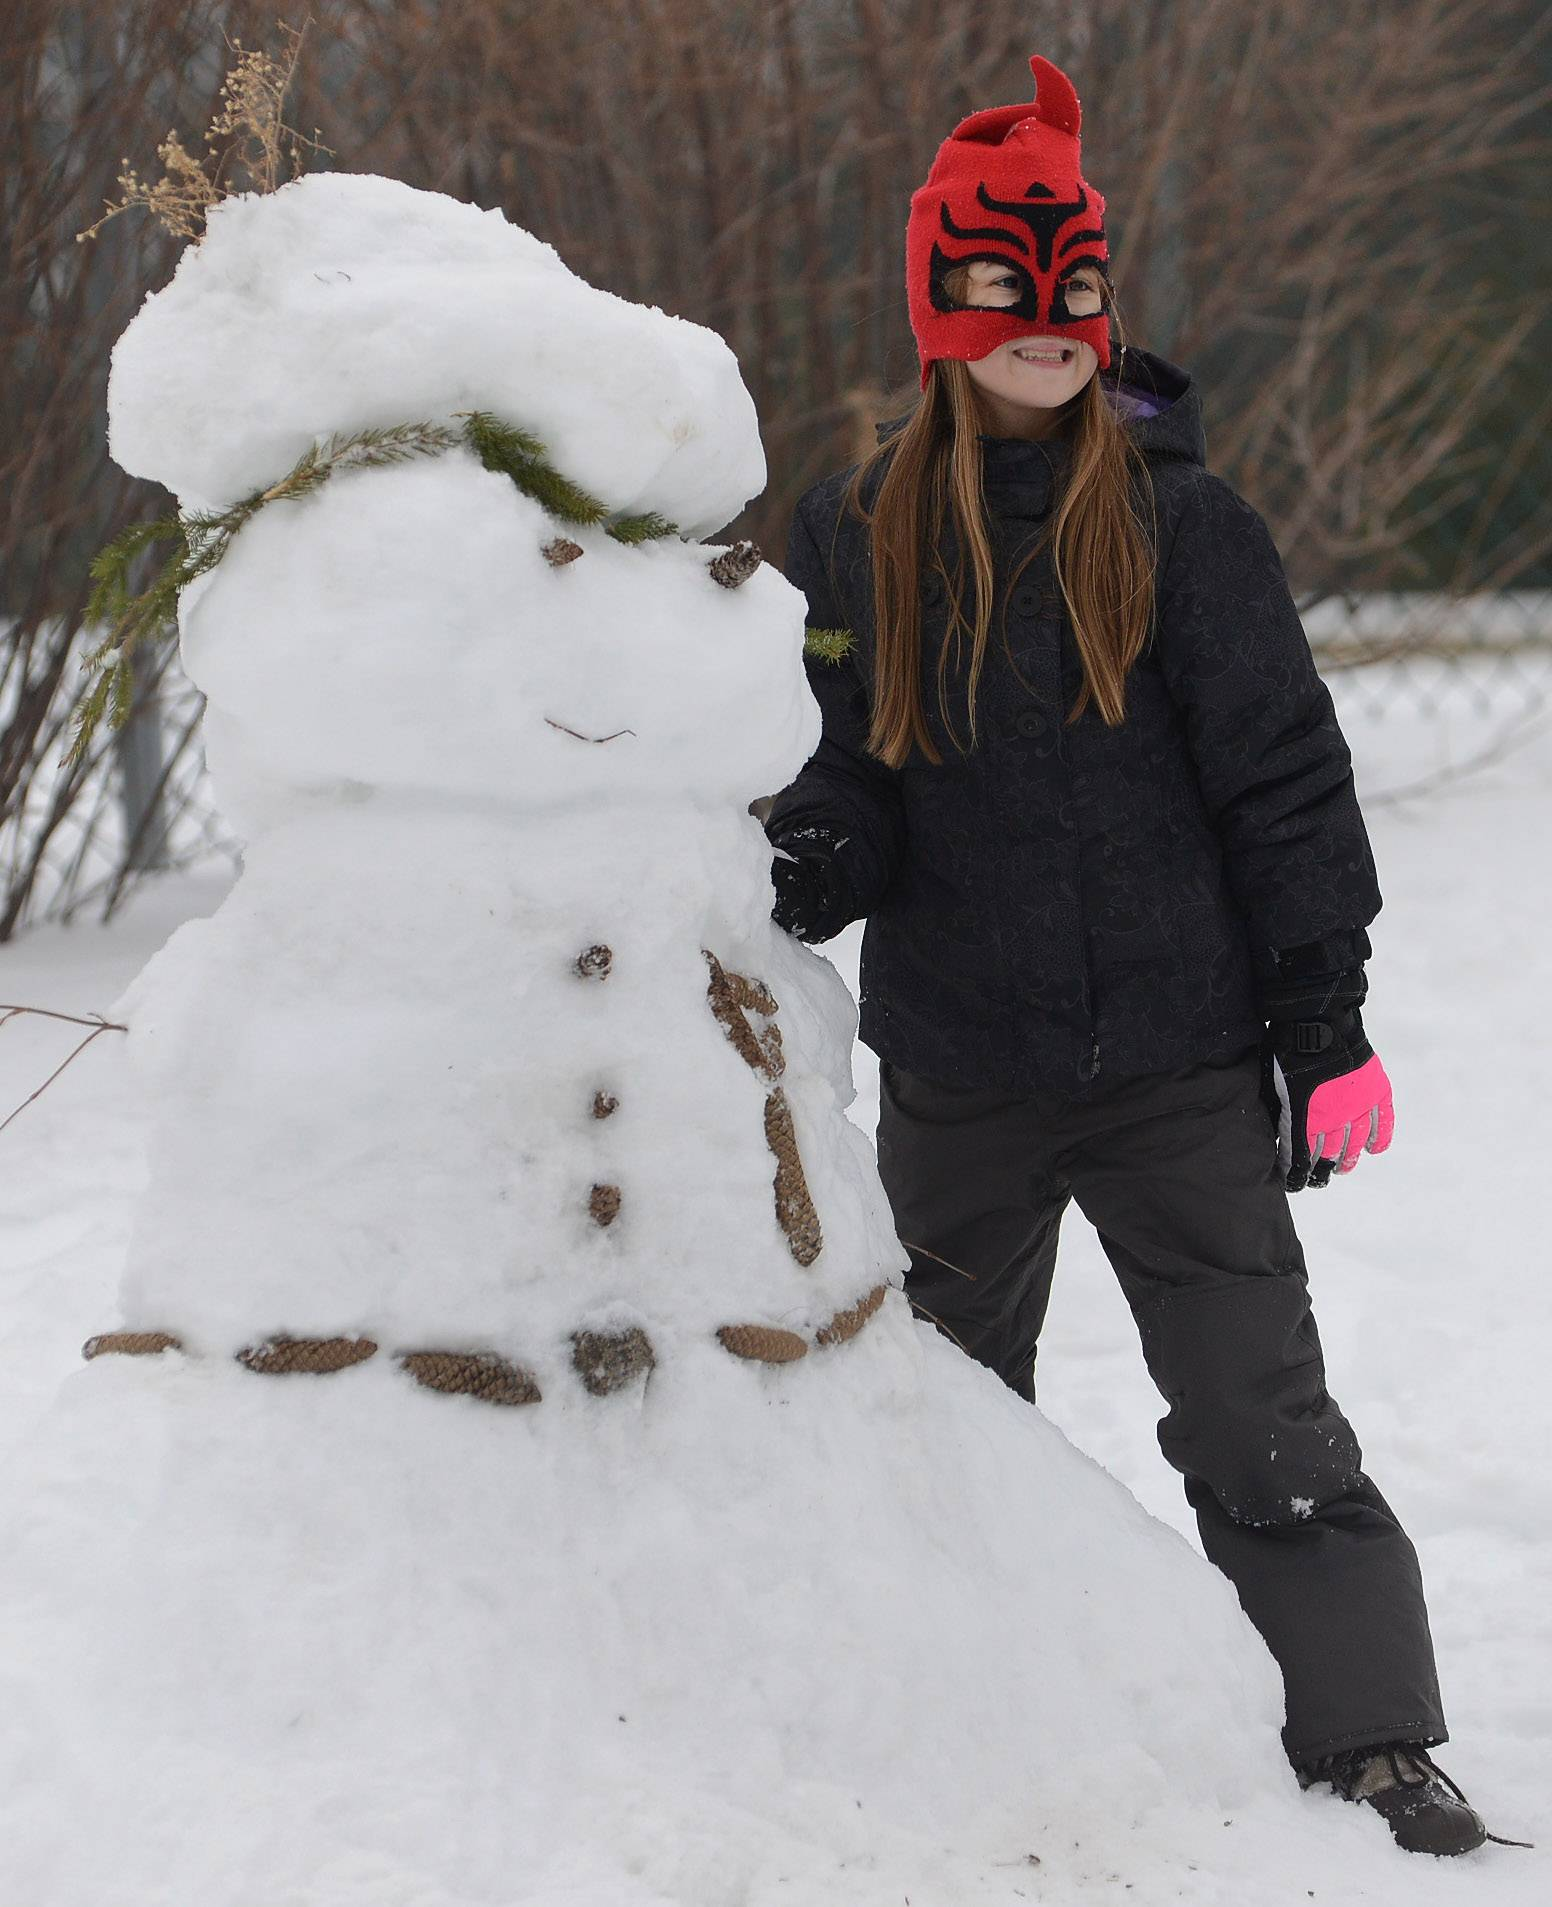 Warm weather not stopping Hawthorn Woods' Winter Carnival